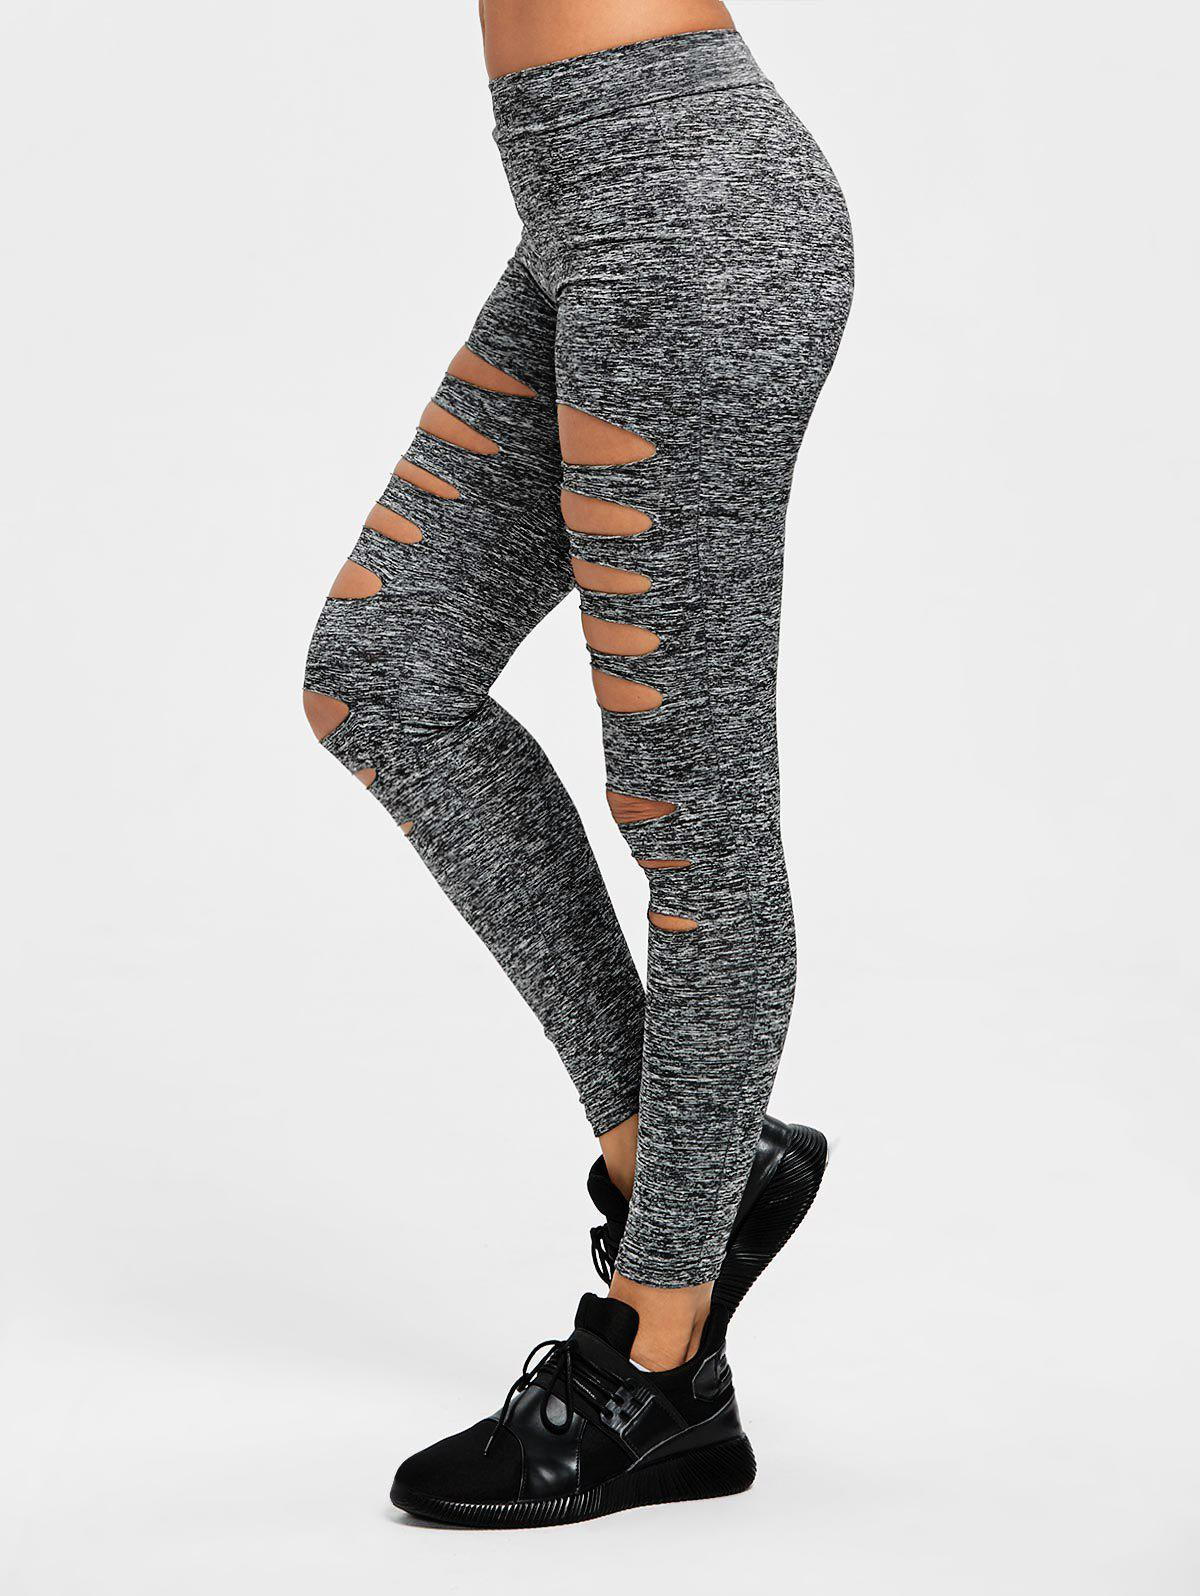 Shop Marled Ladder Shredding Gym Leggings